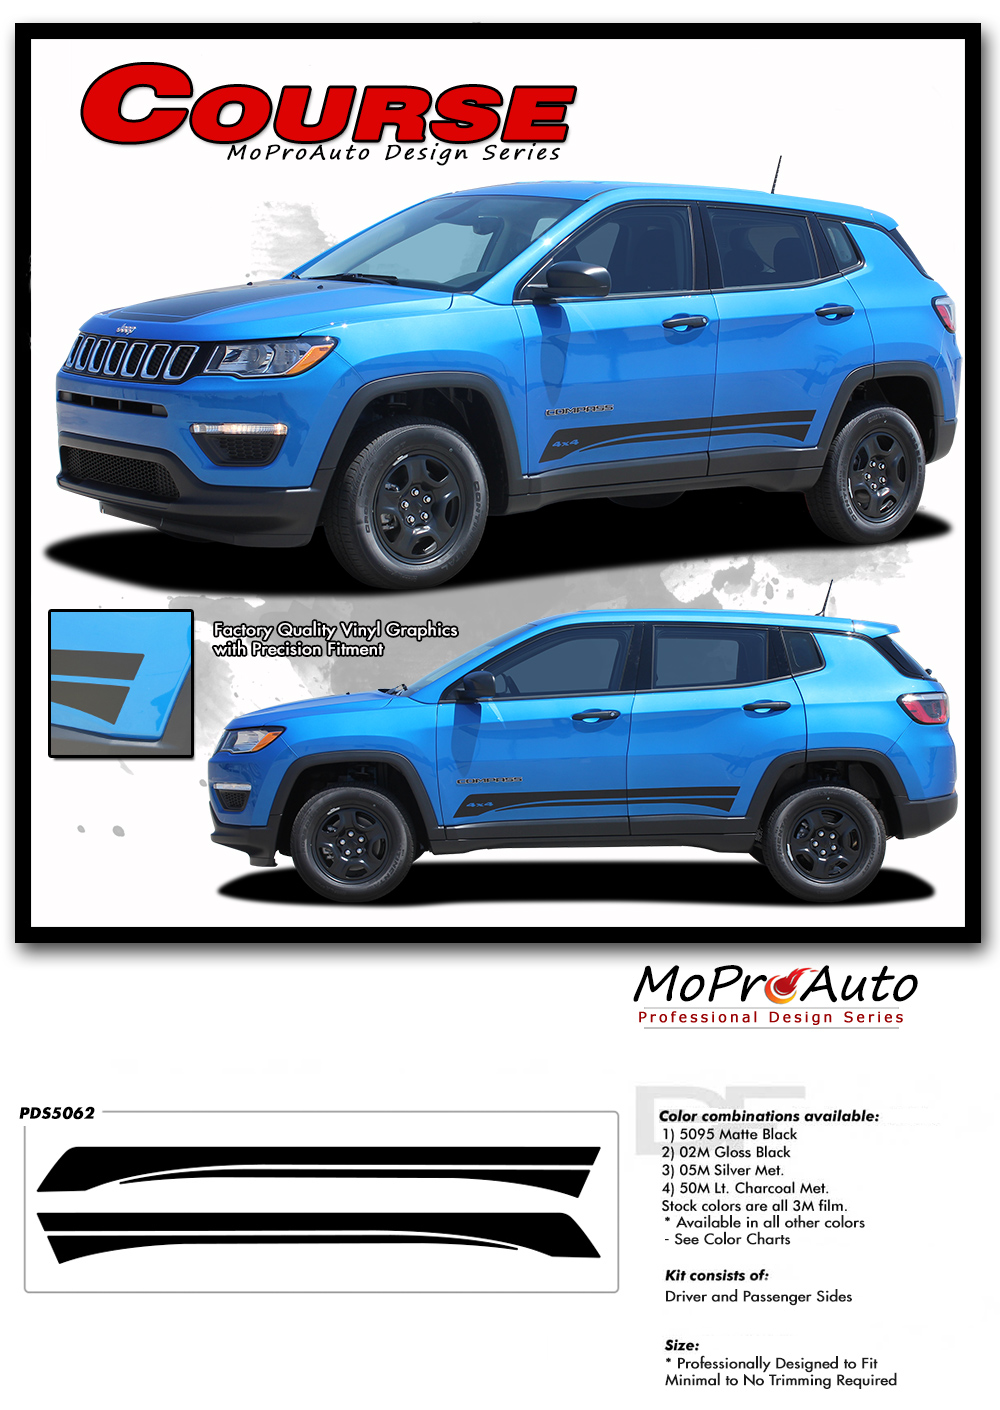 2017 2018 Jeep Compass Vinyl Graphics Decals Stripes - MoProAuto Pro Design Series - Course